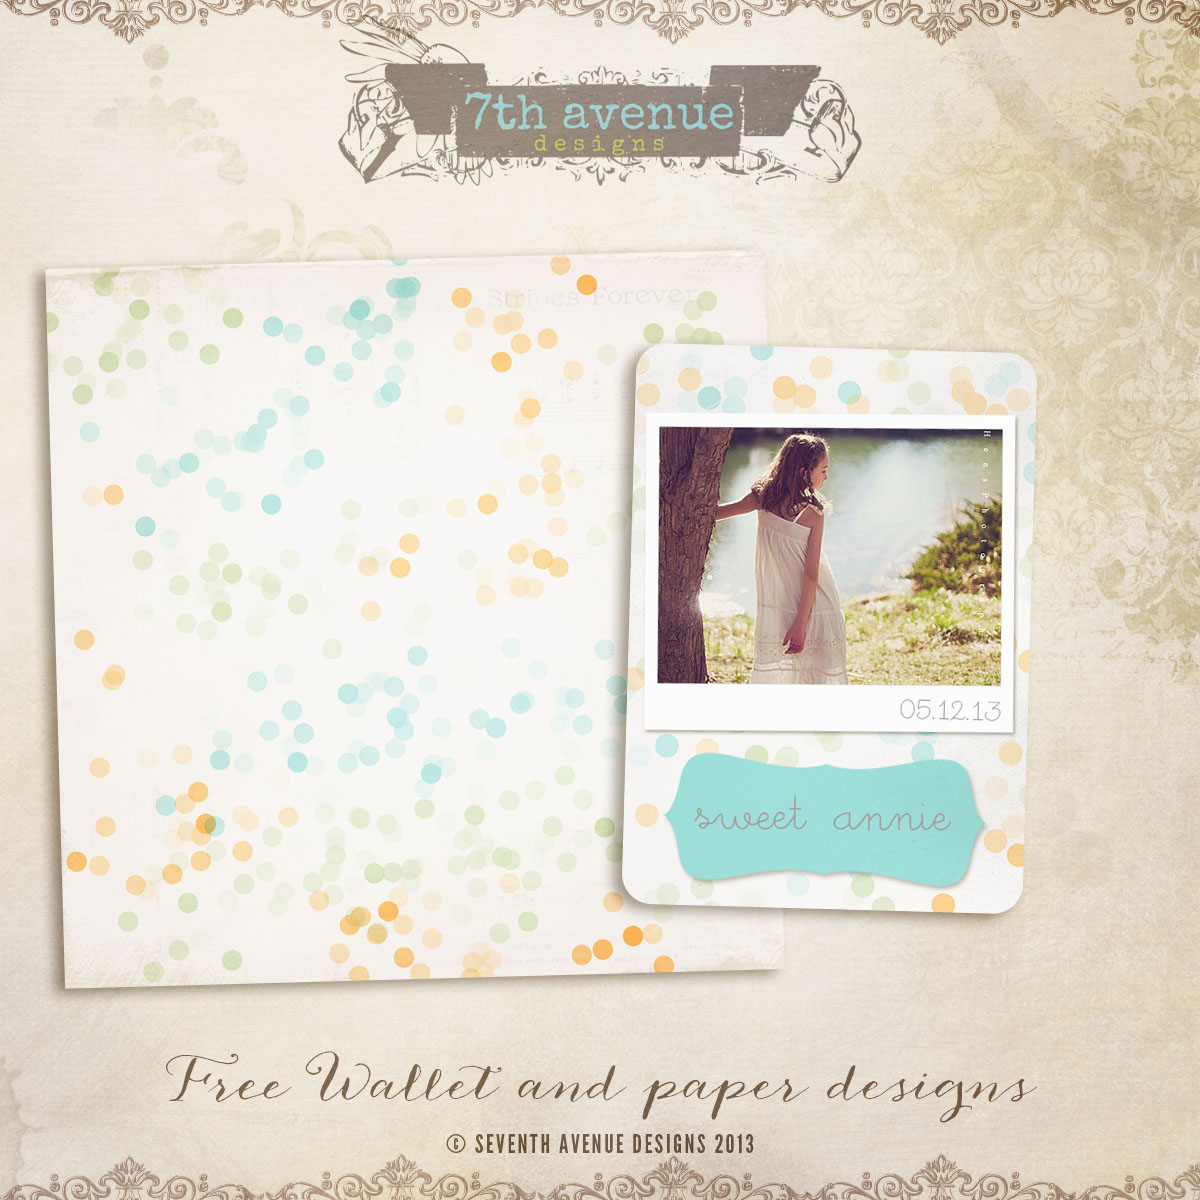 free wallet die cut template and paper freewalletpaper it s free